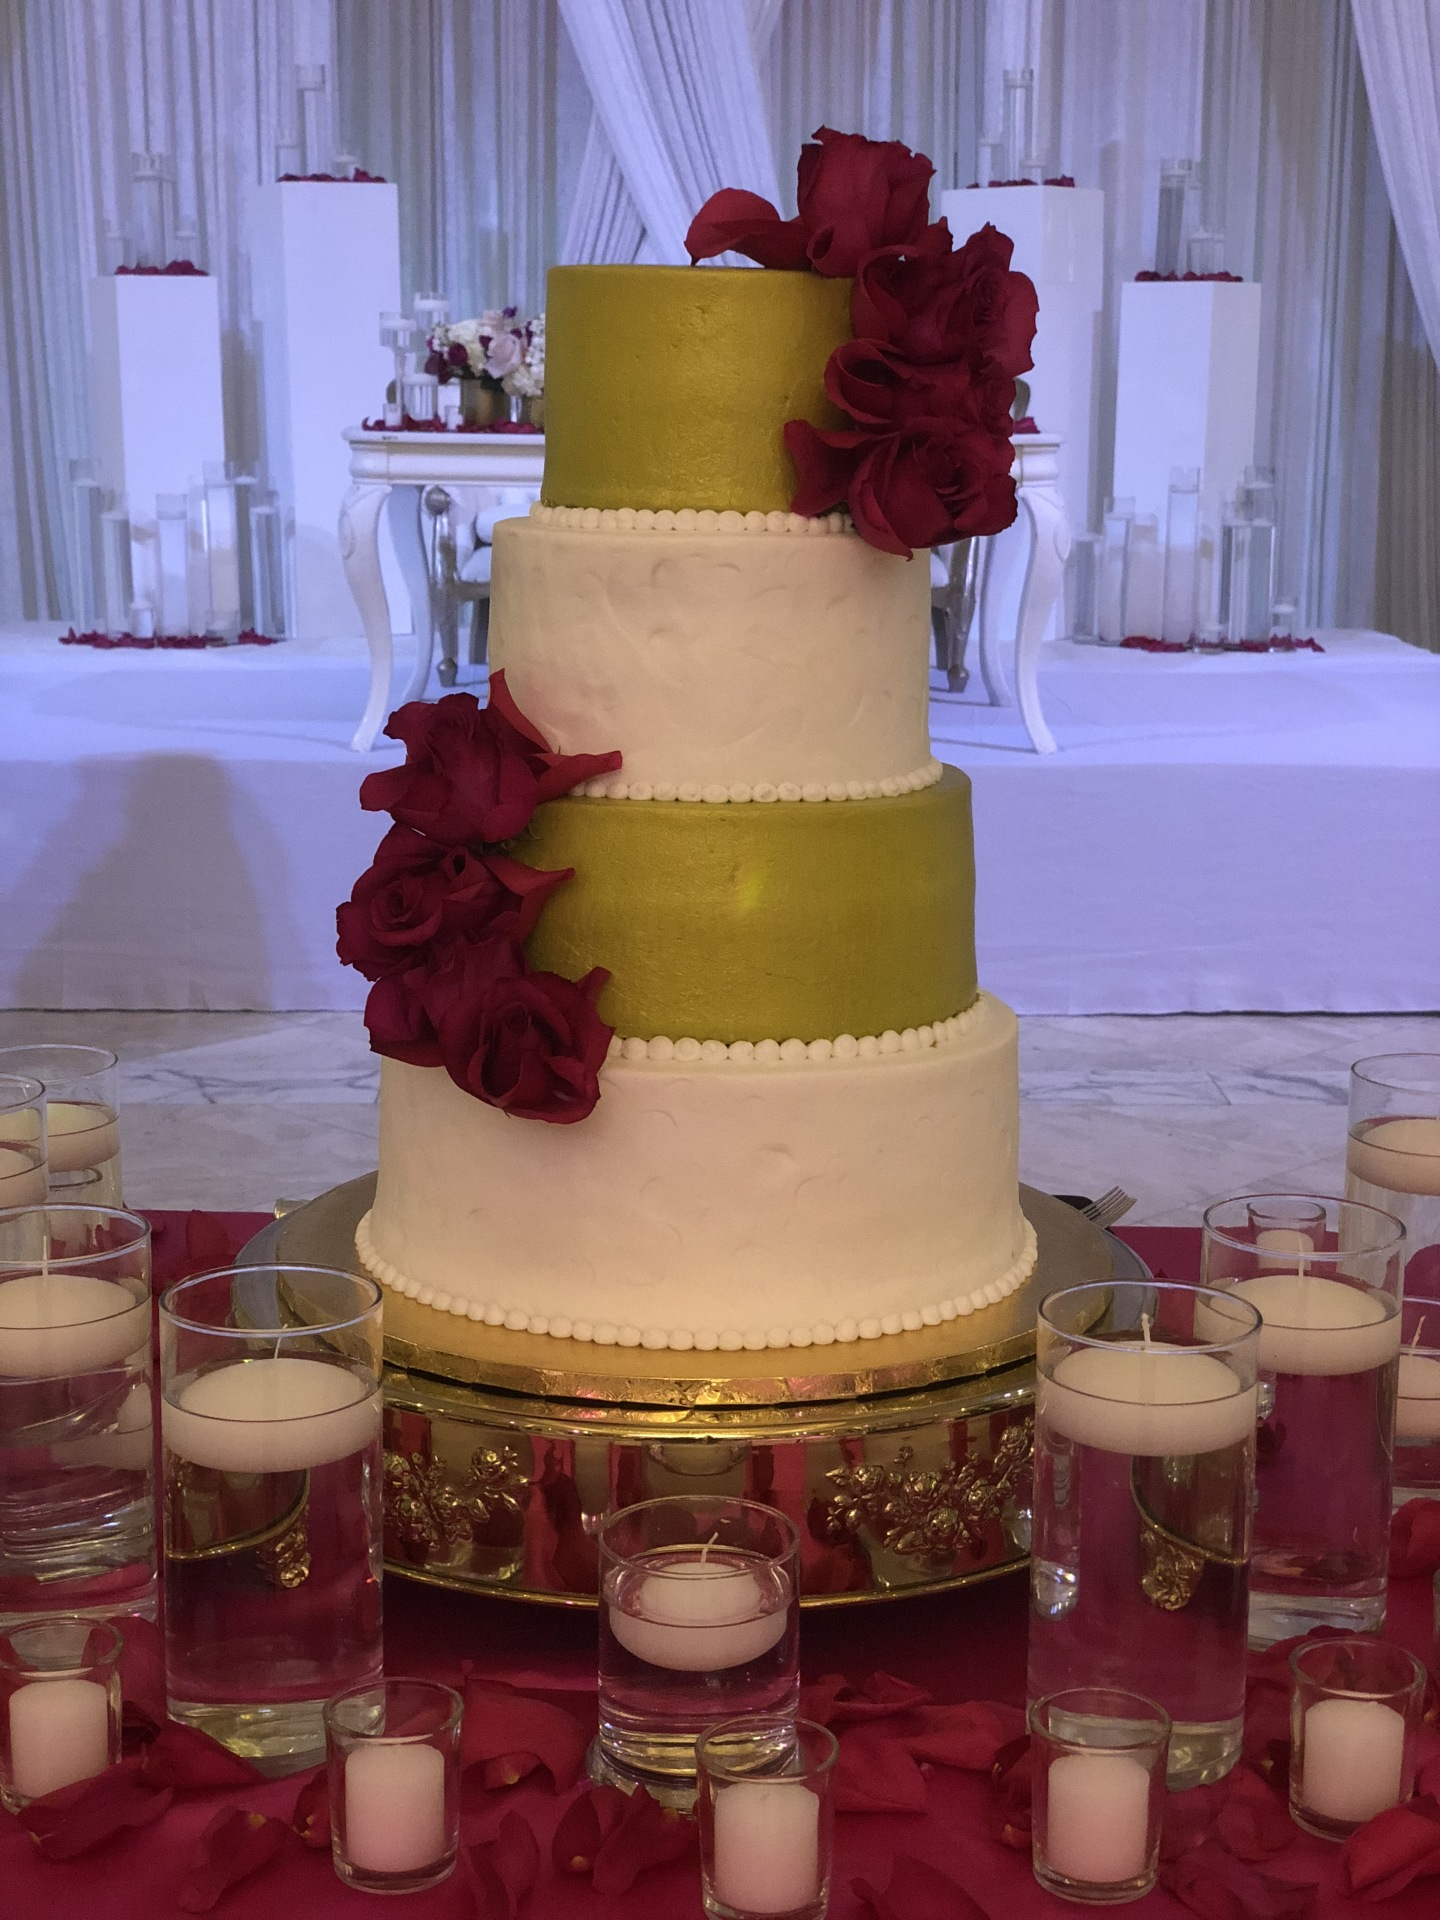 Gold buttercream with fresh roses